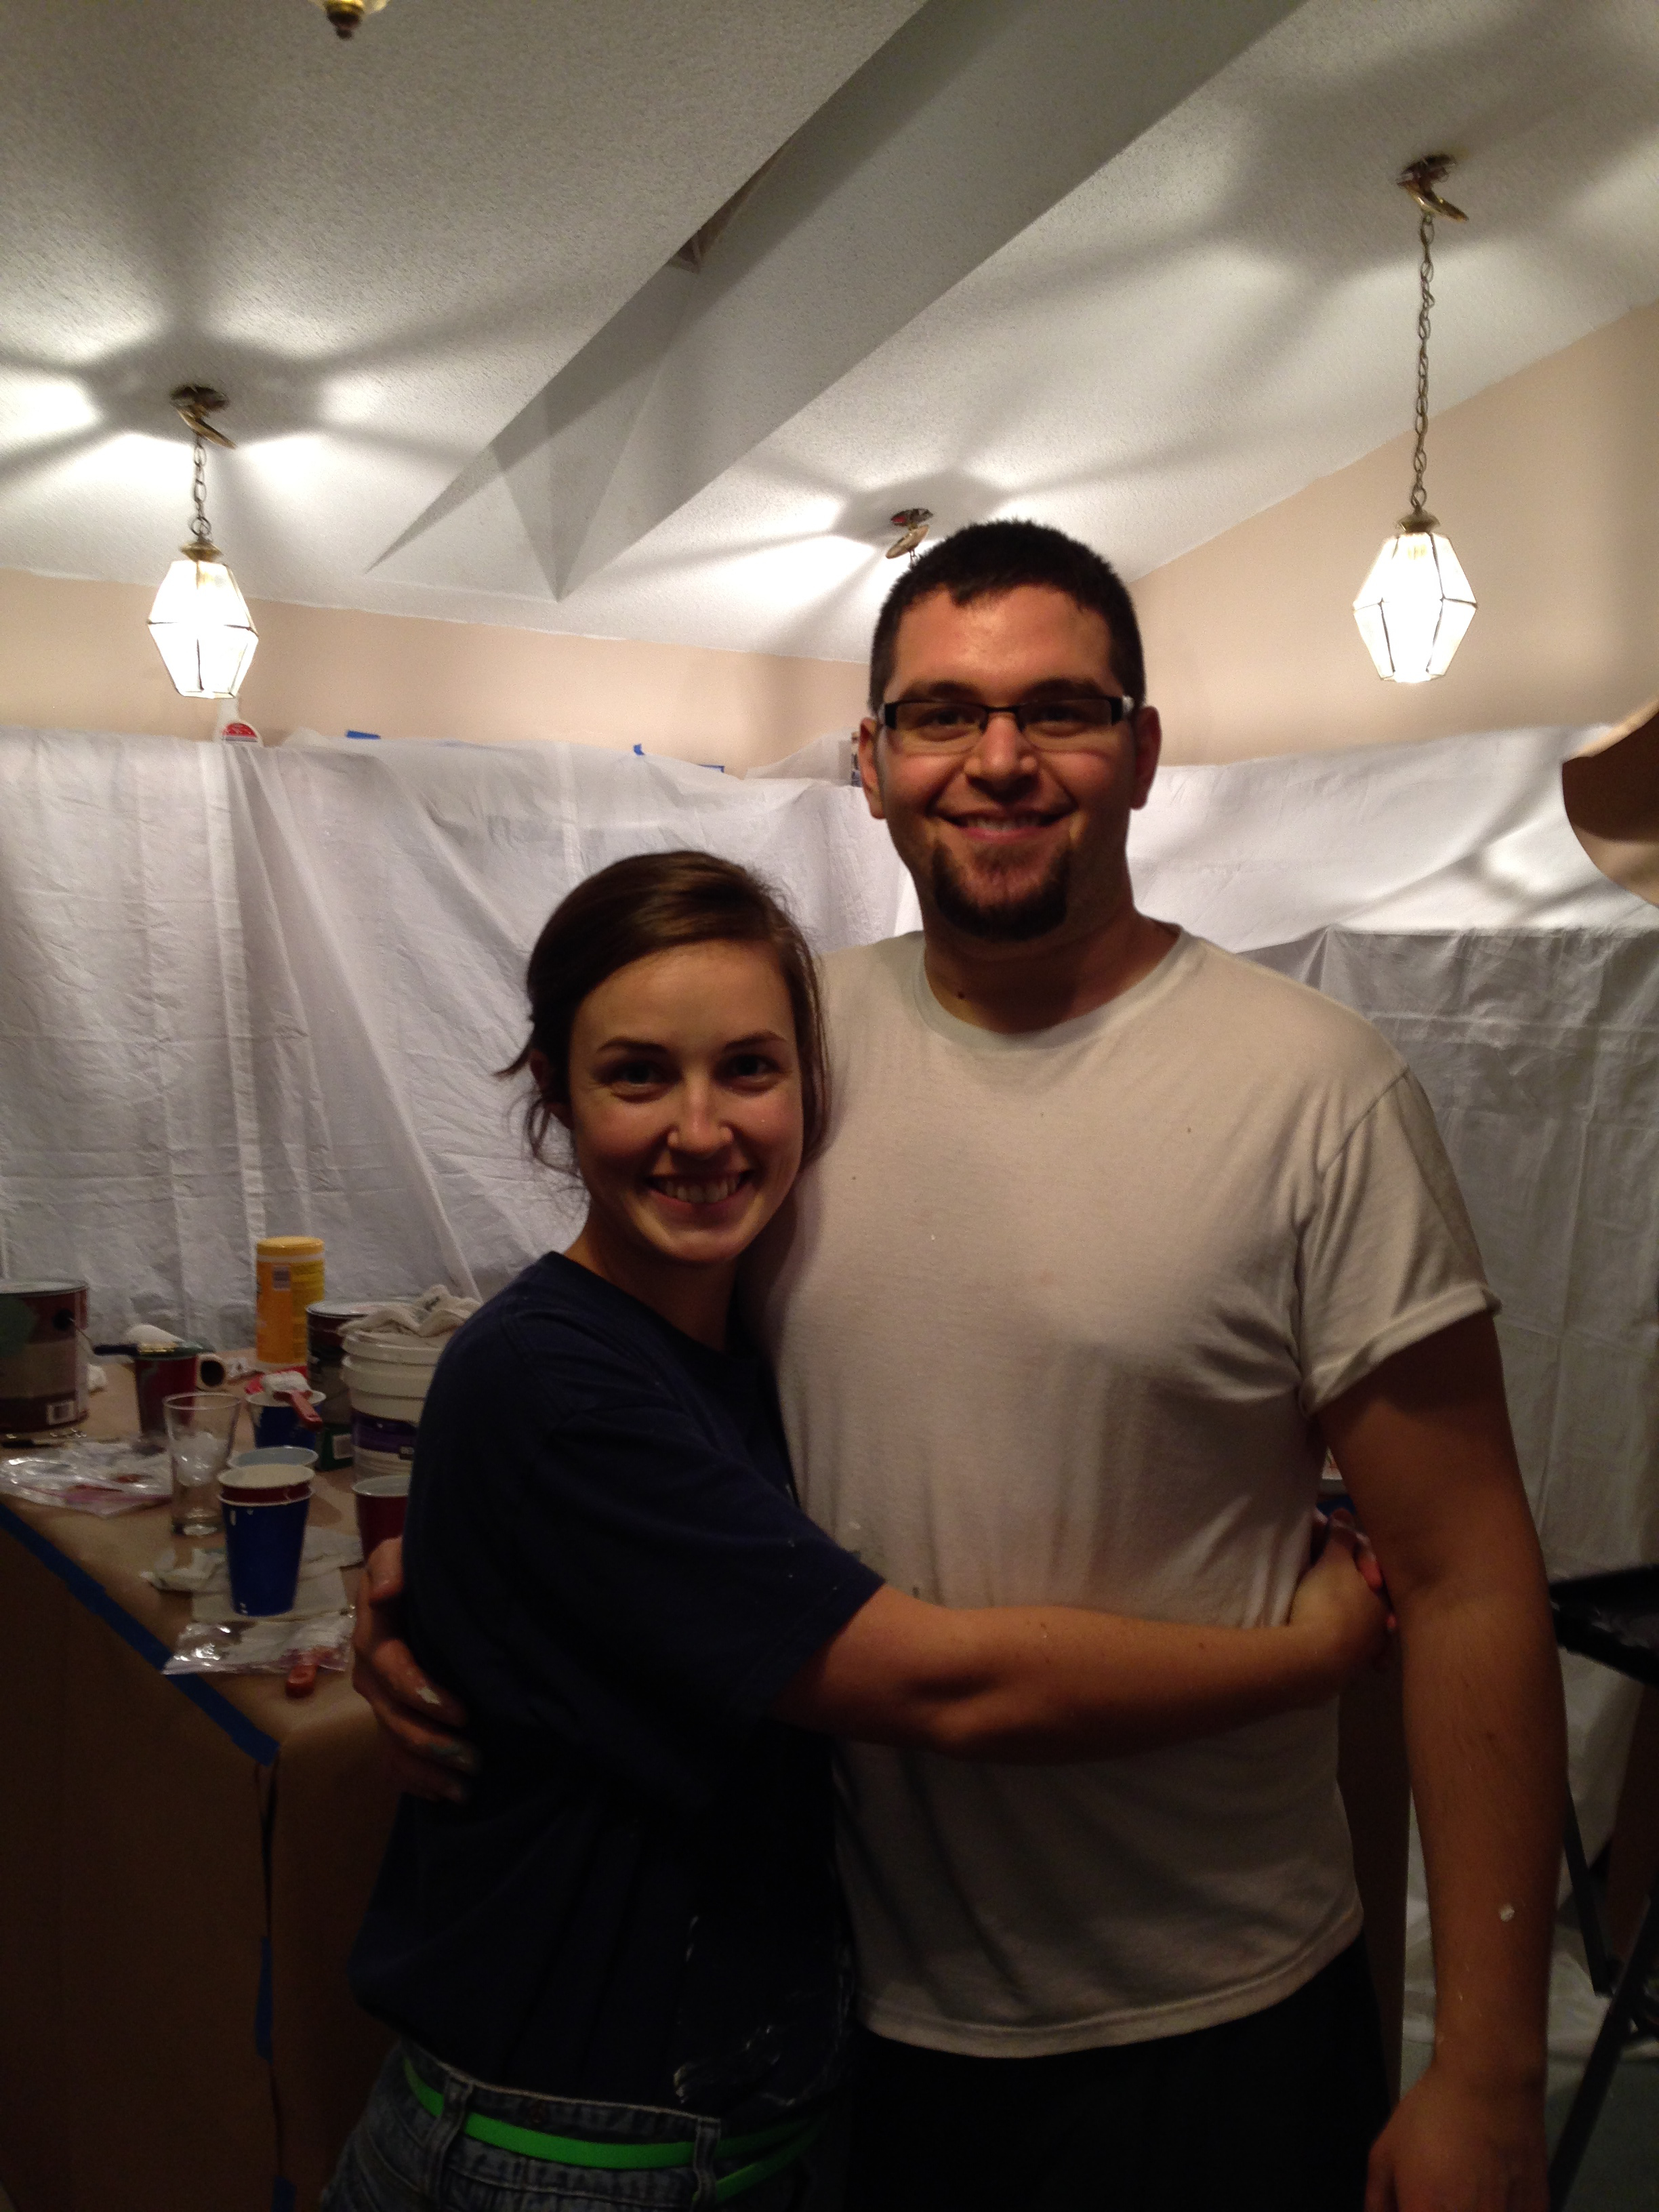 Nate and I painting